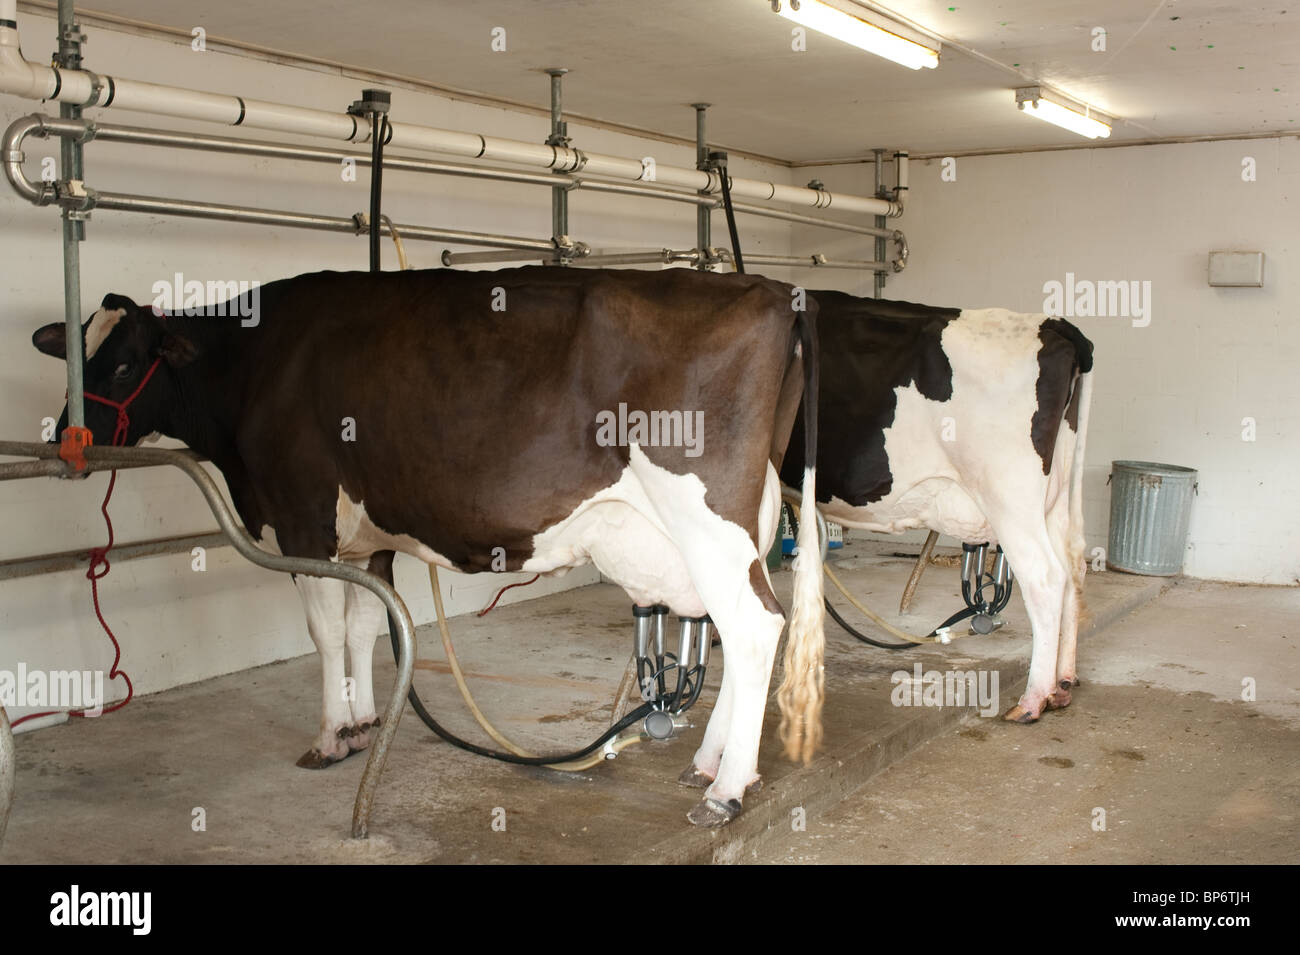 a cow by machine